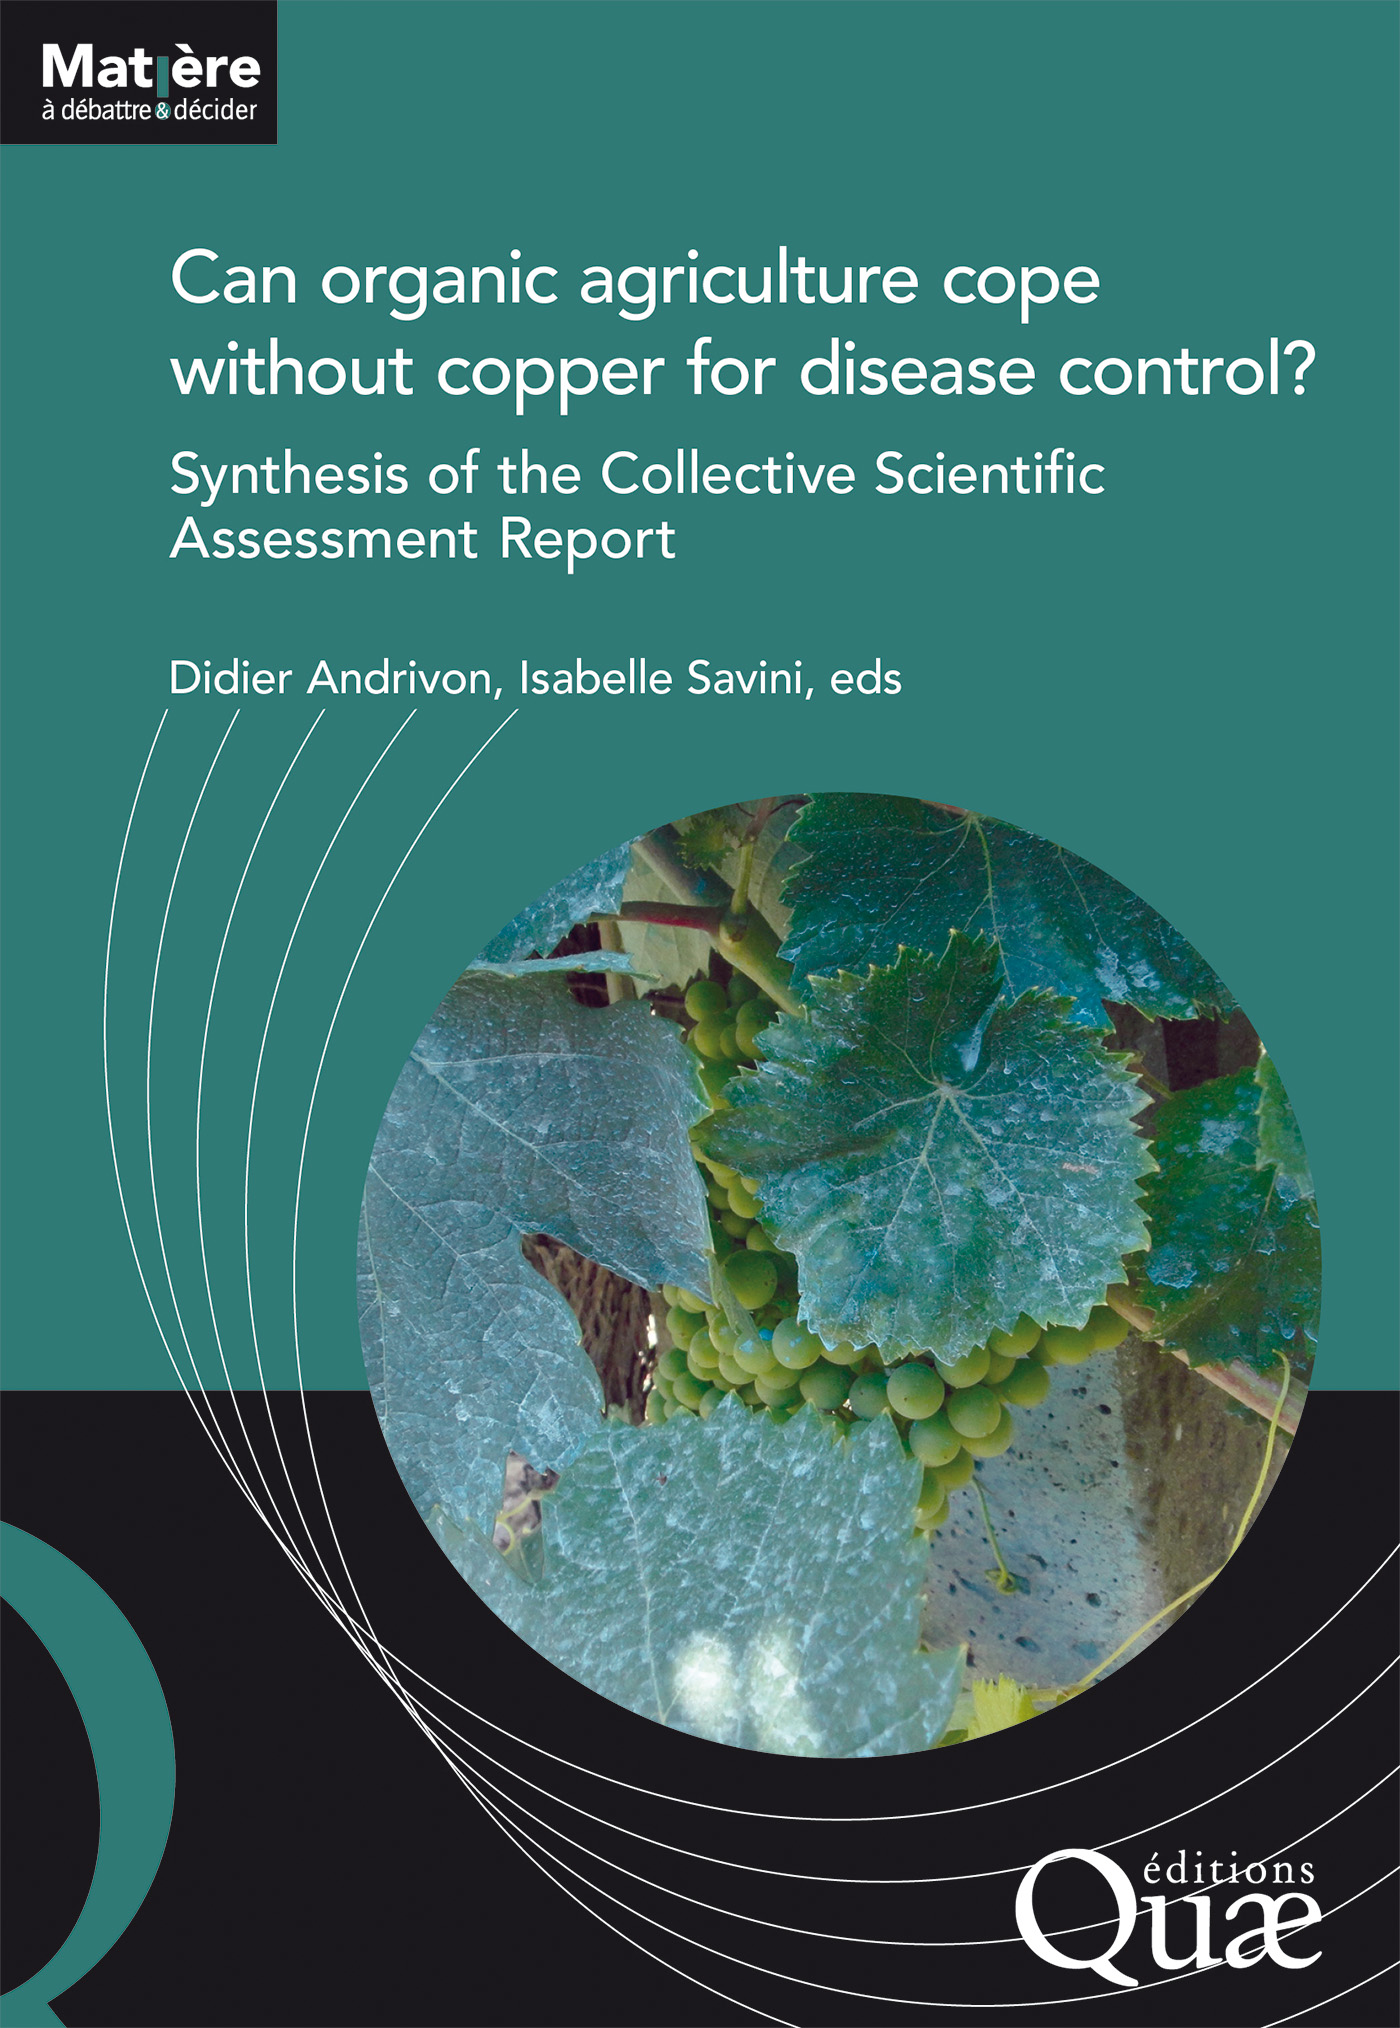 Can organic agriculture cope without copper for disease control?